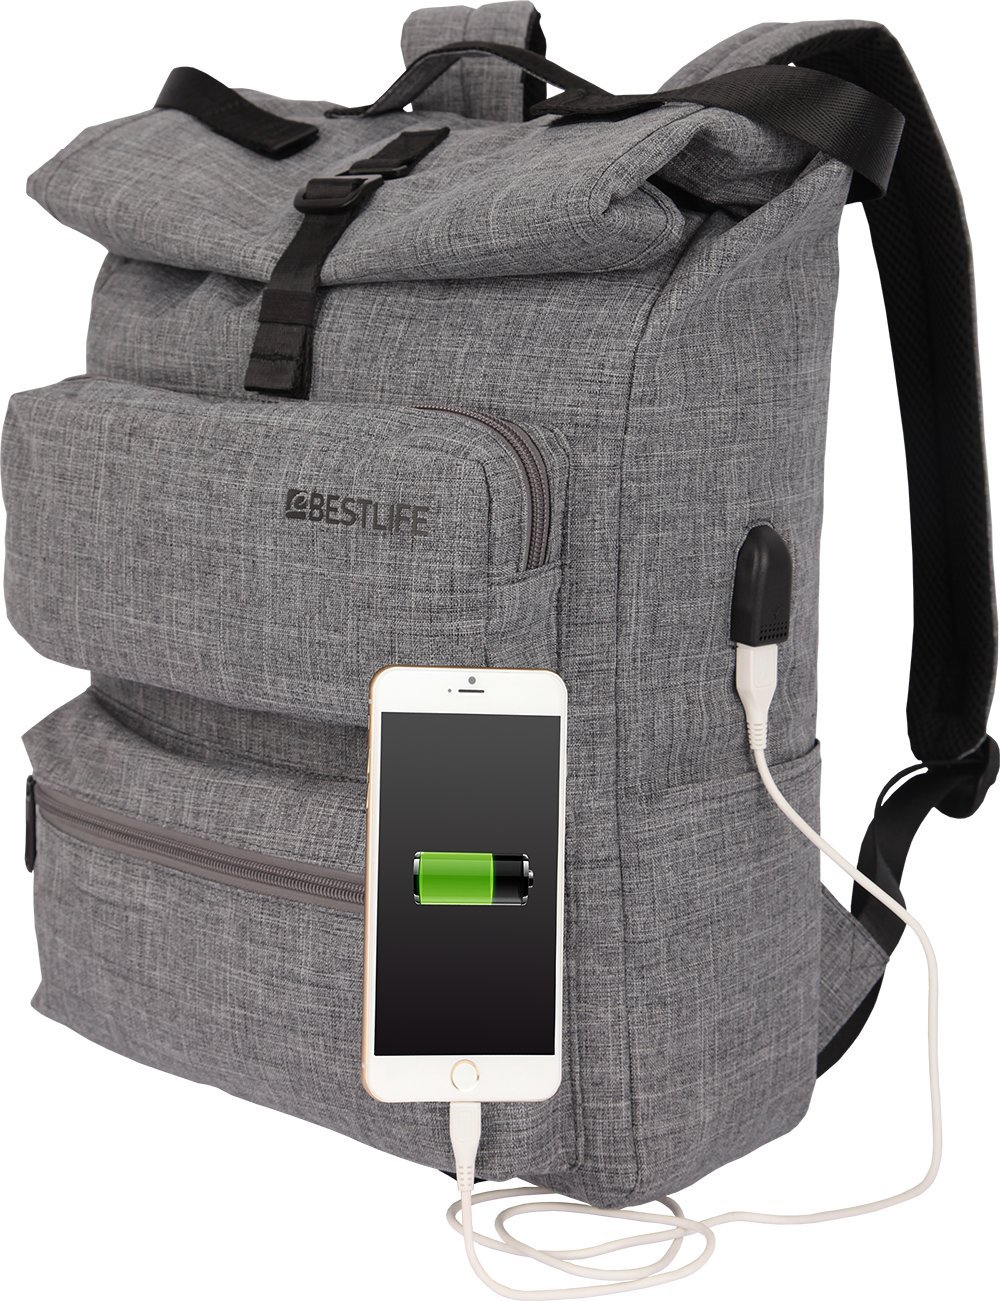 Bestlife Laptop Backpack with USB Charging Port Fits up to 15.6-Inch Laptop and Notebook for Men/Women School College Business Rucksack (Grey) good